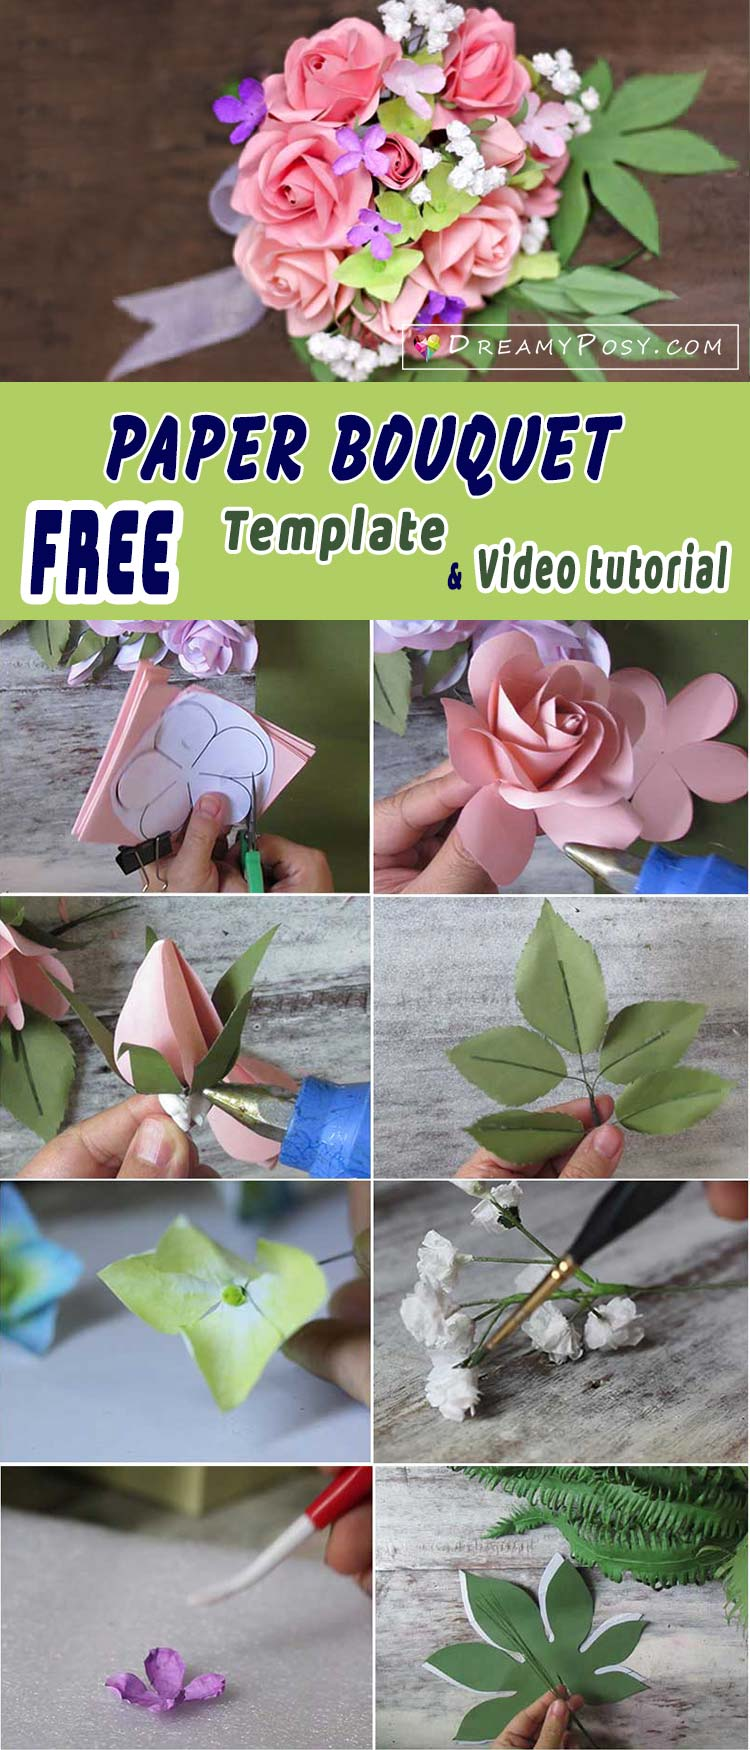 How to make rose paper bouquet free template and full tutorial free template and tutorial to make paper rose bouquet rose paper bouquet paper rose izmirmasajfo